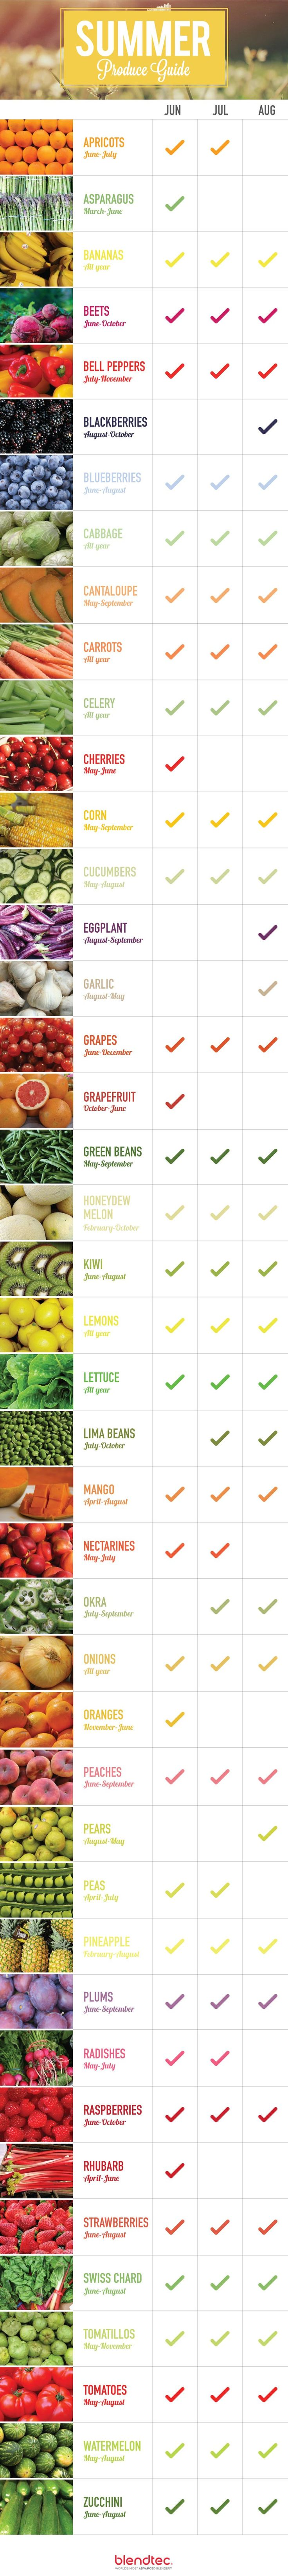 Summer is here and there are so many delicious fruits and veggies coming into season. Check out what's available, as well as some tasty recipes you can enjoy with all that fresh produce.